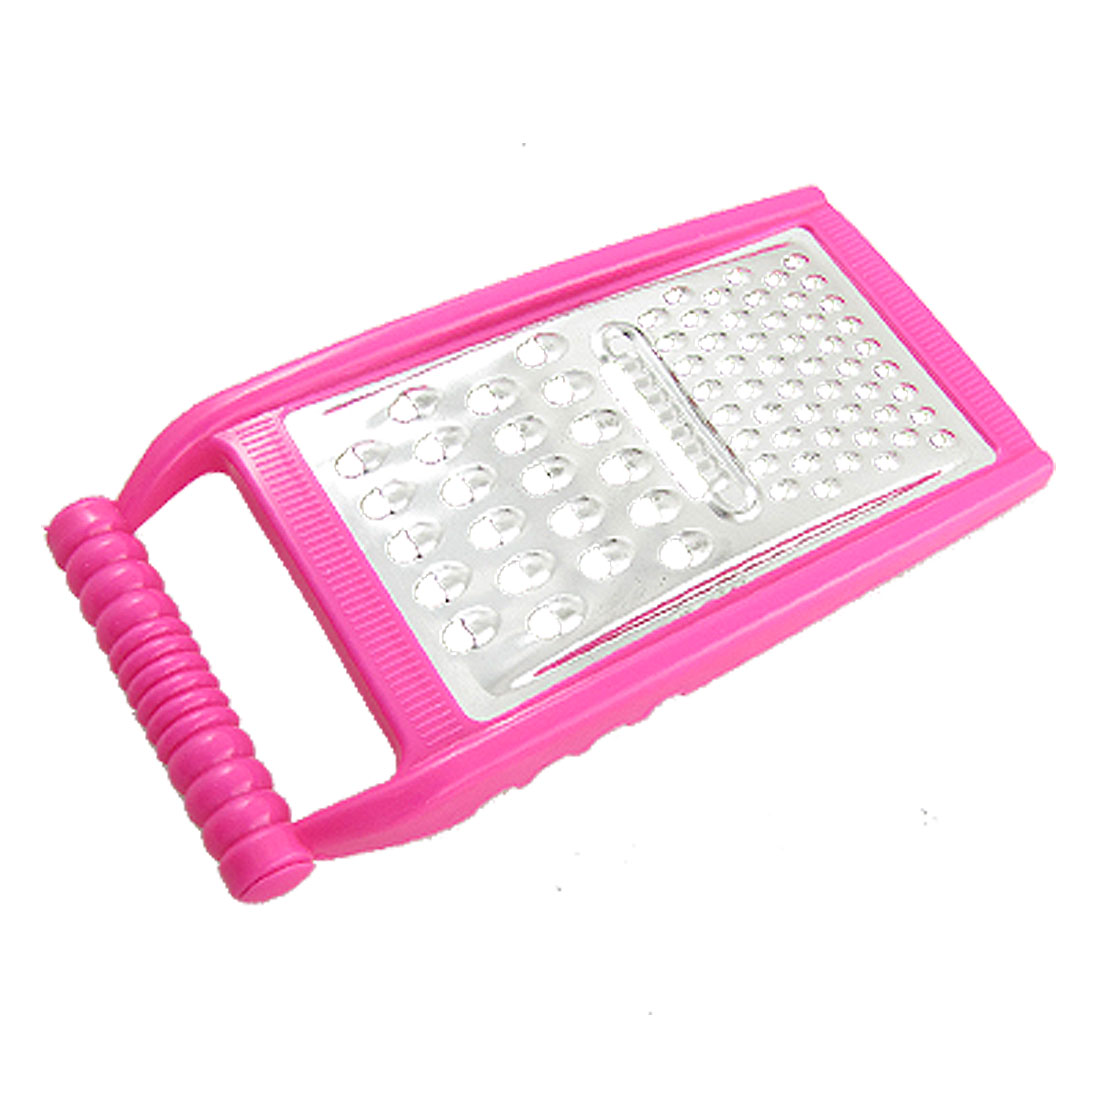 Hot Pink Vegetable Peeler Cheese Fruit Graters Kitchen Tool